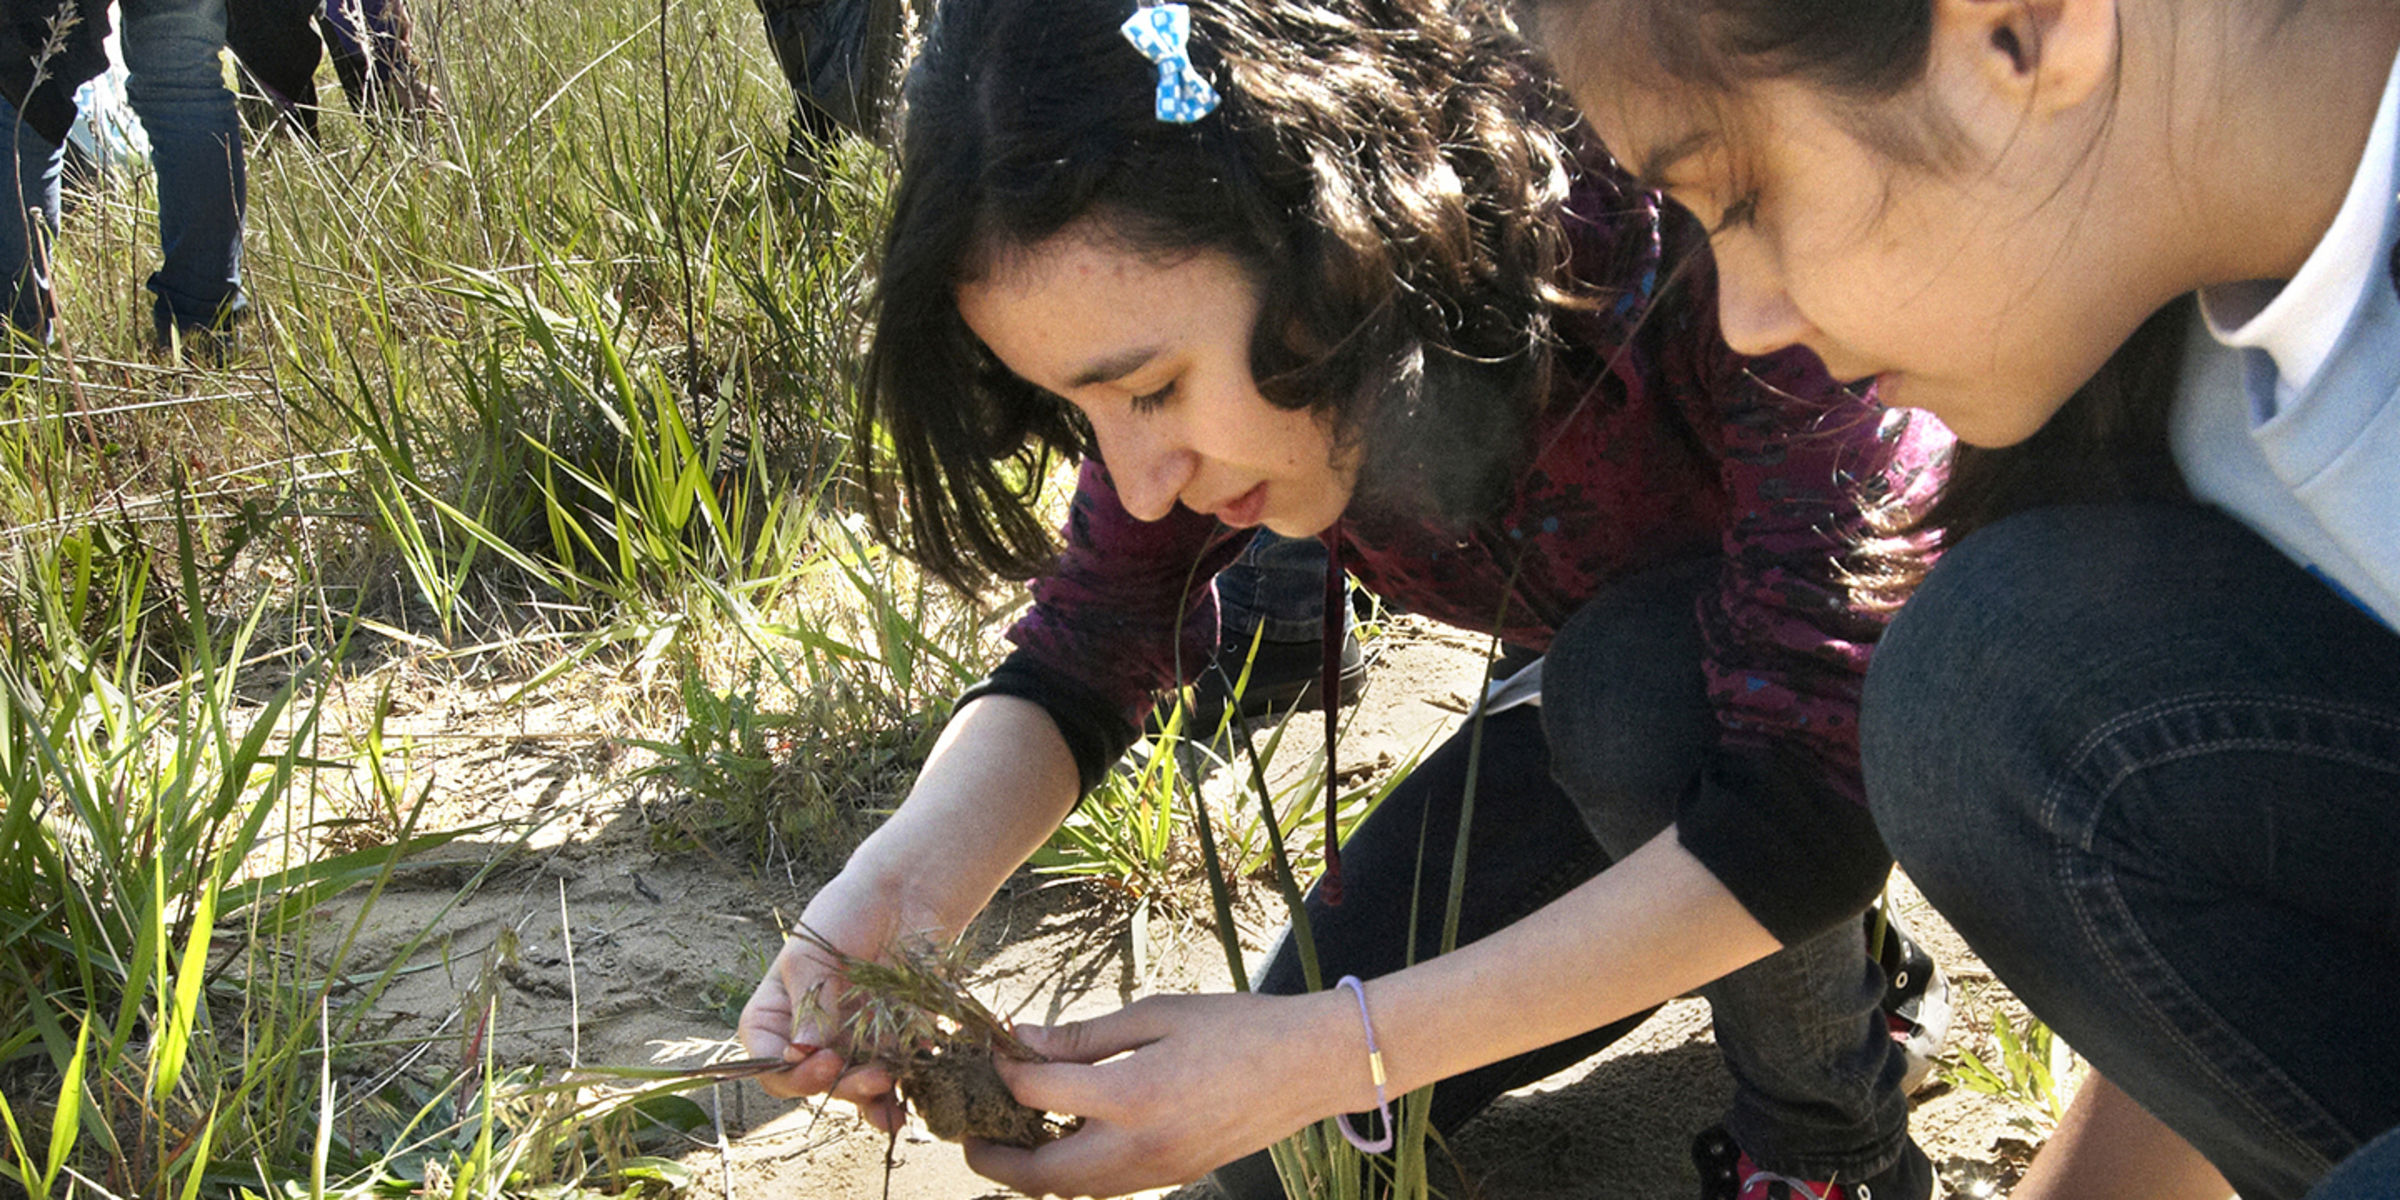 Two young girls crouch low near the ground to hold and observe plants. The girl in the back holds blades of grass between her two hands while the other looks on.